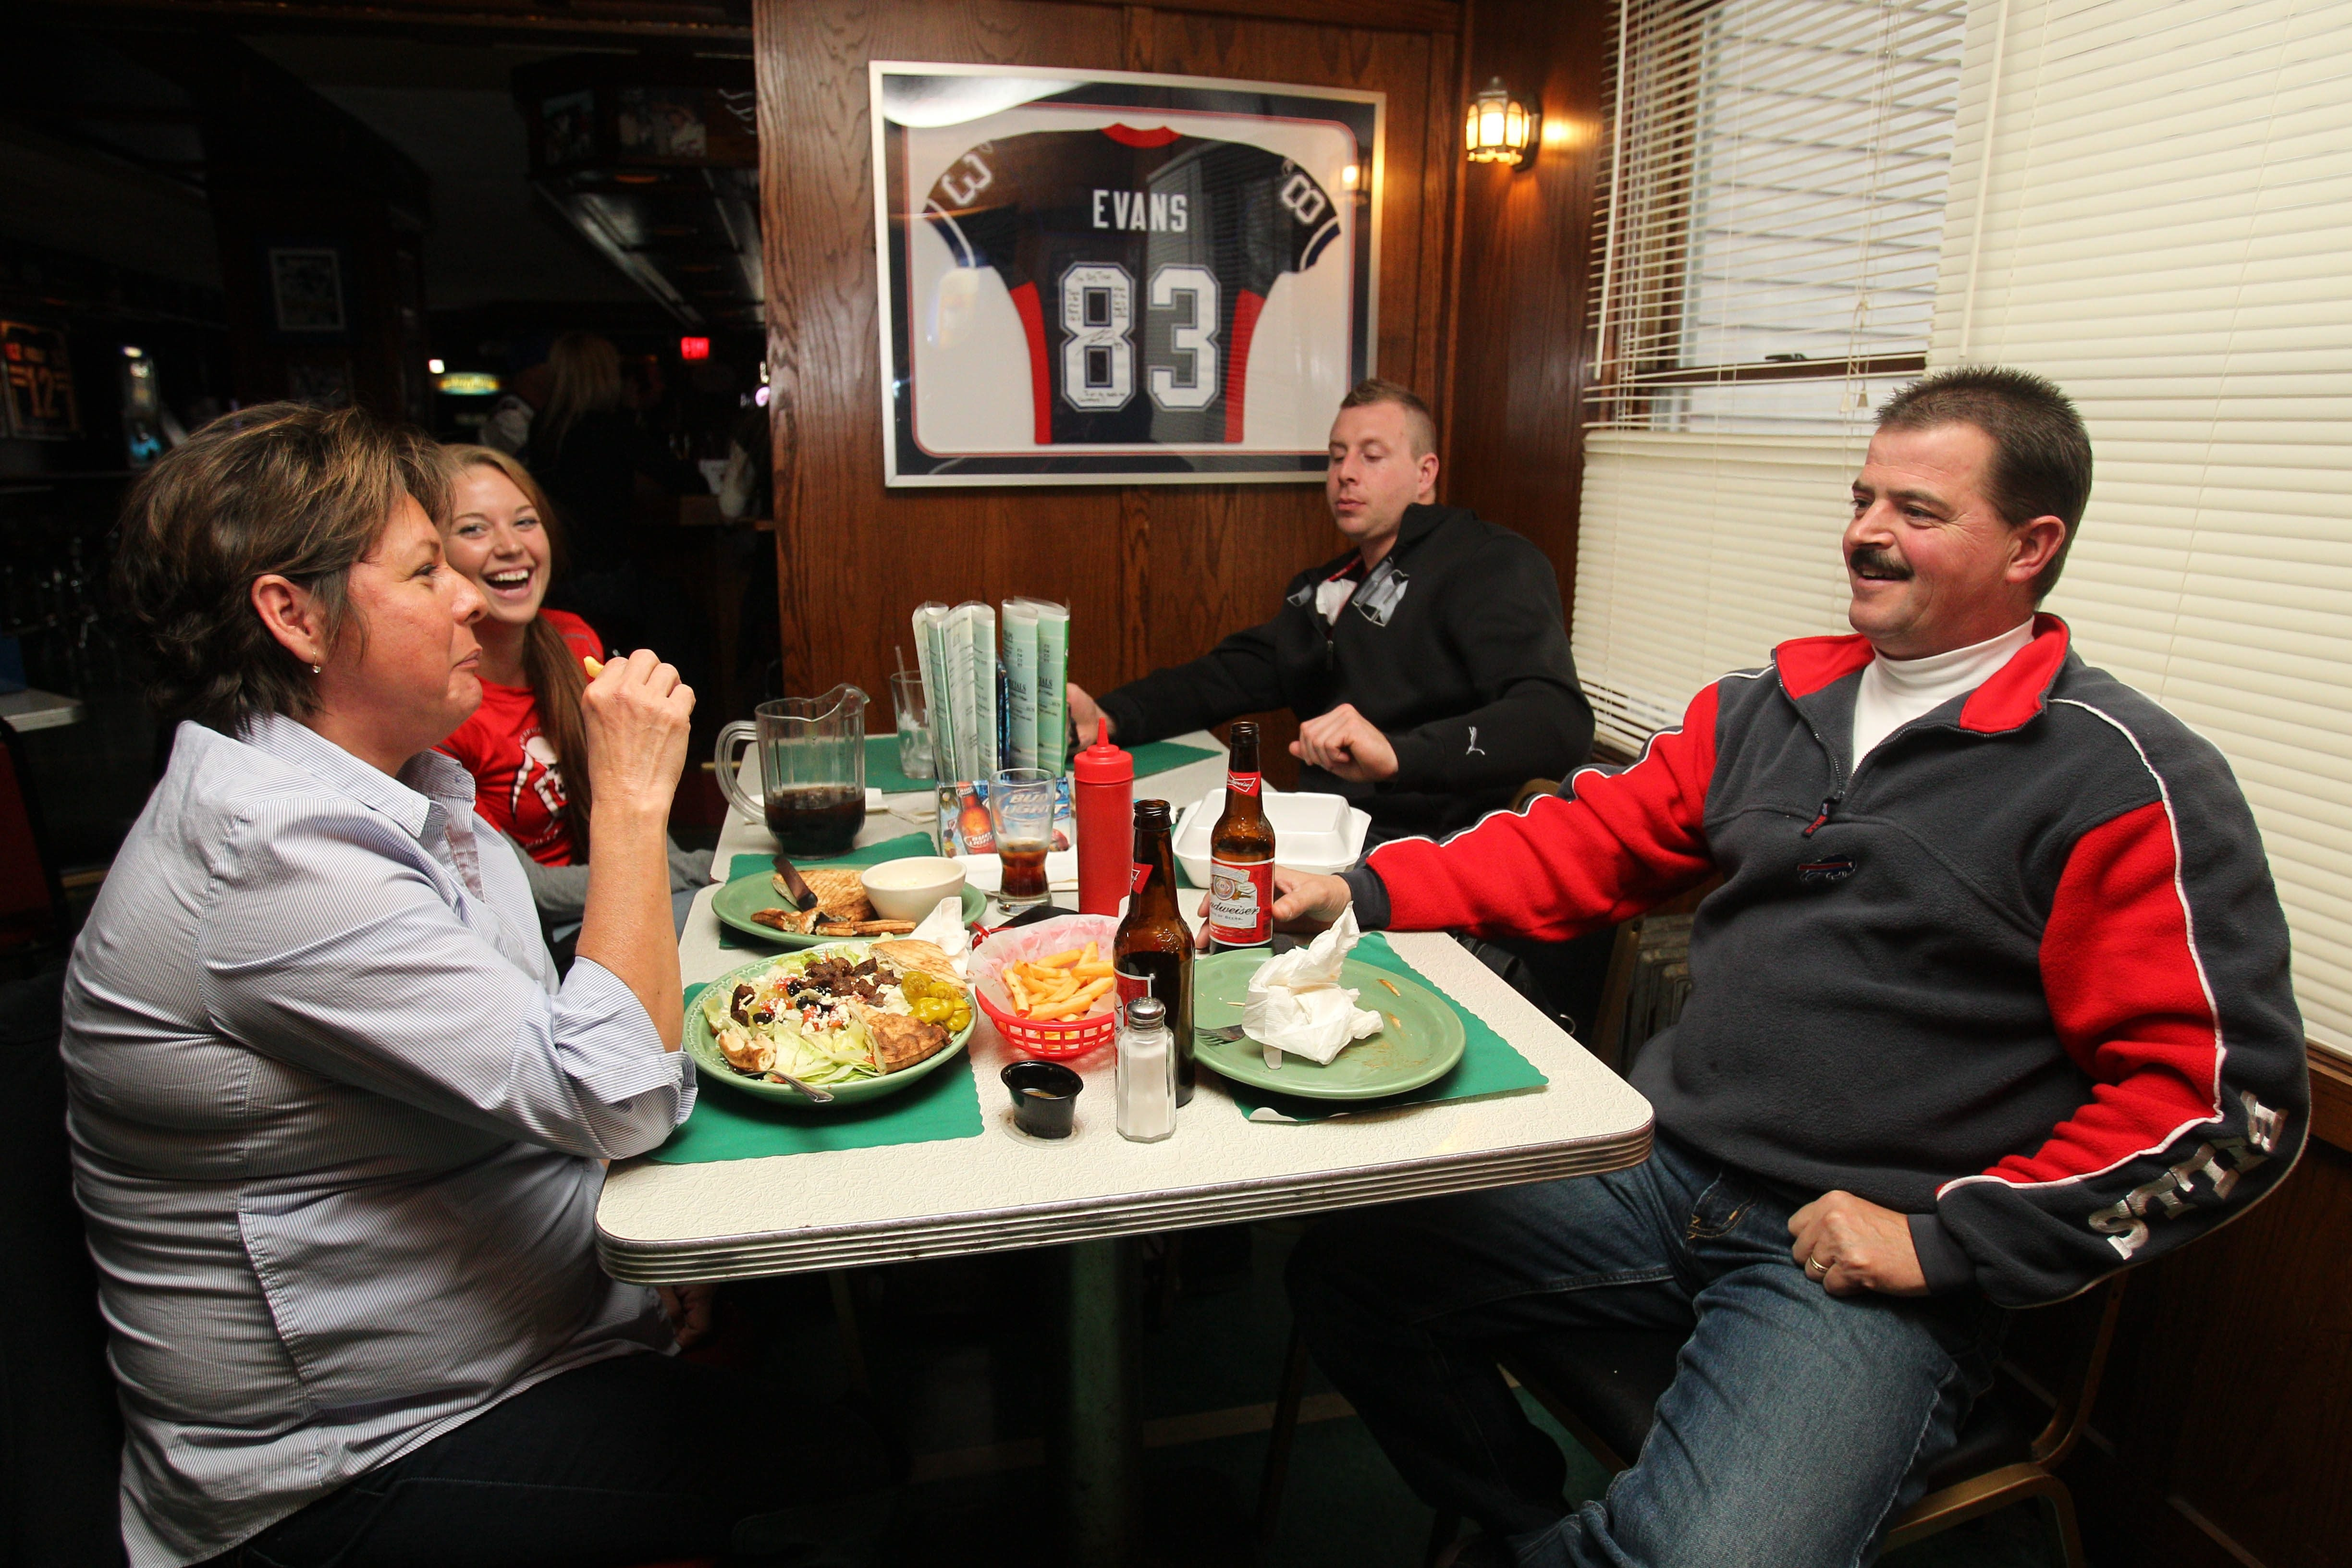 Customers watch the Bills game at the Big Tree Inn on Abbott Rd. in Orchard Park, Sunday, Nov. 10, 2013.  Helen Hout, left, and her husband Jim, right,  are accompanied by their son Andrew Clark, second from right and his girlfriend Jennifer Riccuti.  They are from the Town of Niagara. (Sharon Cantillon/Buffalo News)